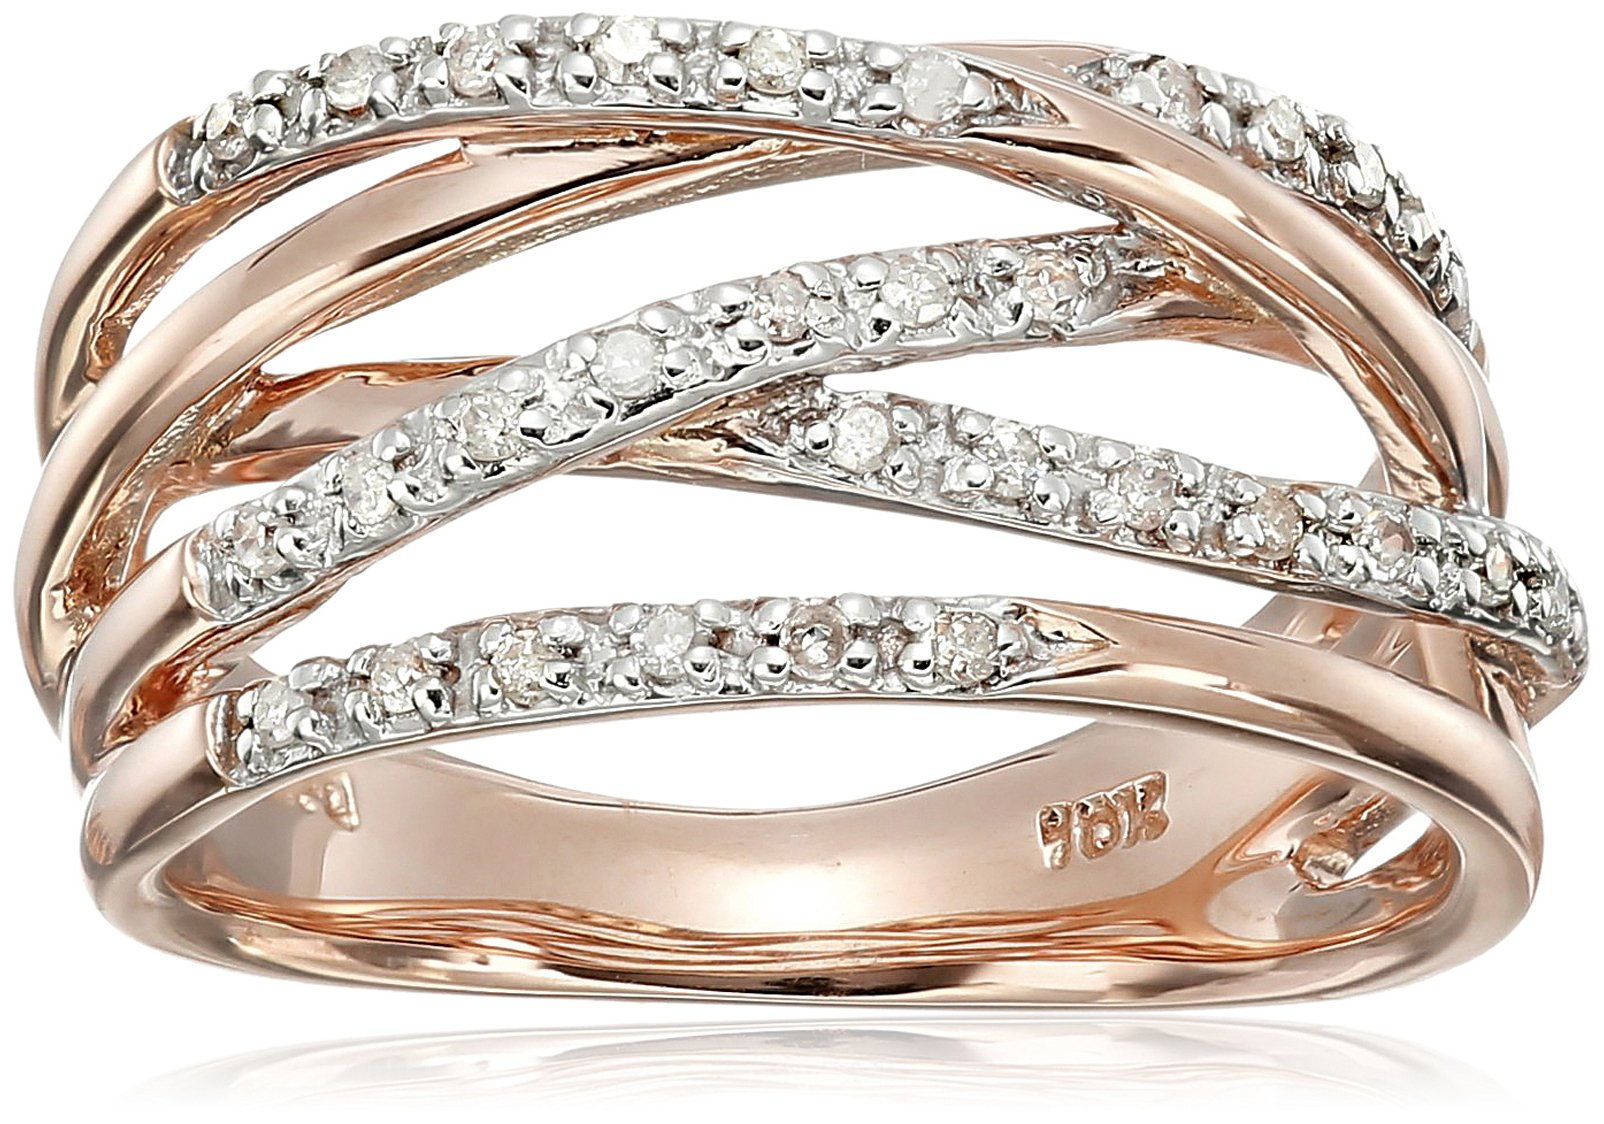 10k Rose Gold Woven Diamond Ring (0.14 cttw, I-J Color, I2-I3 Clarity), Size 8